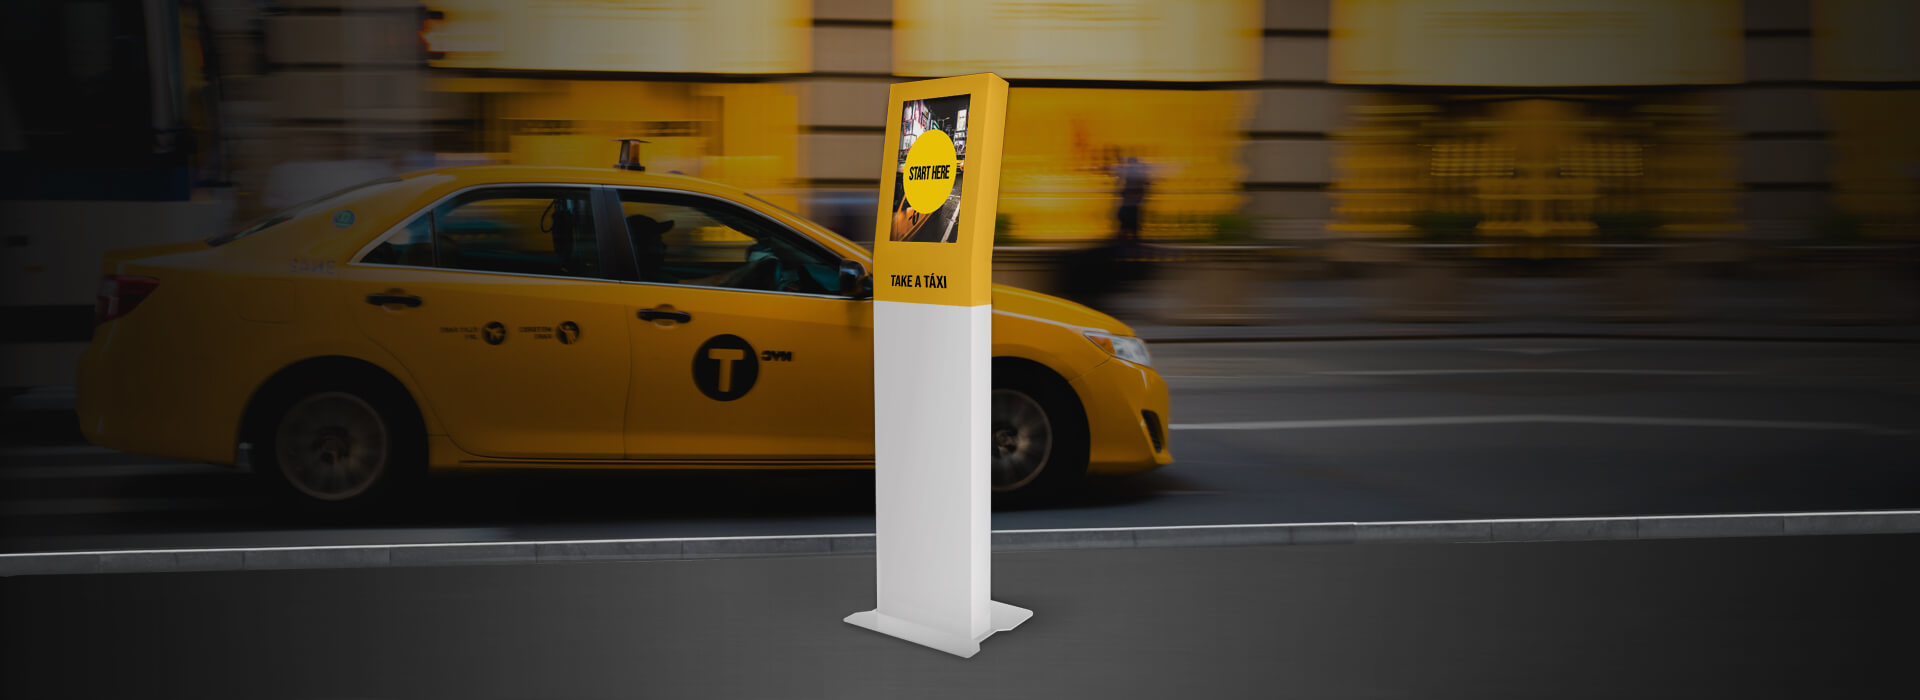 Multimedia Kiosks for Taxis